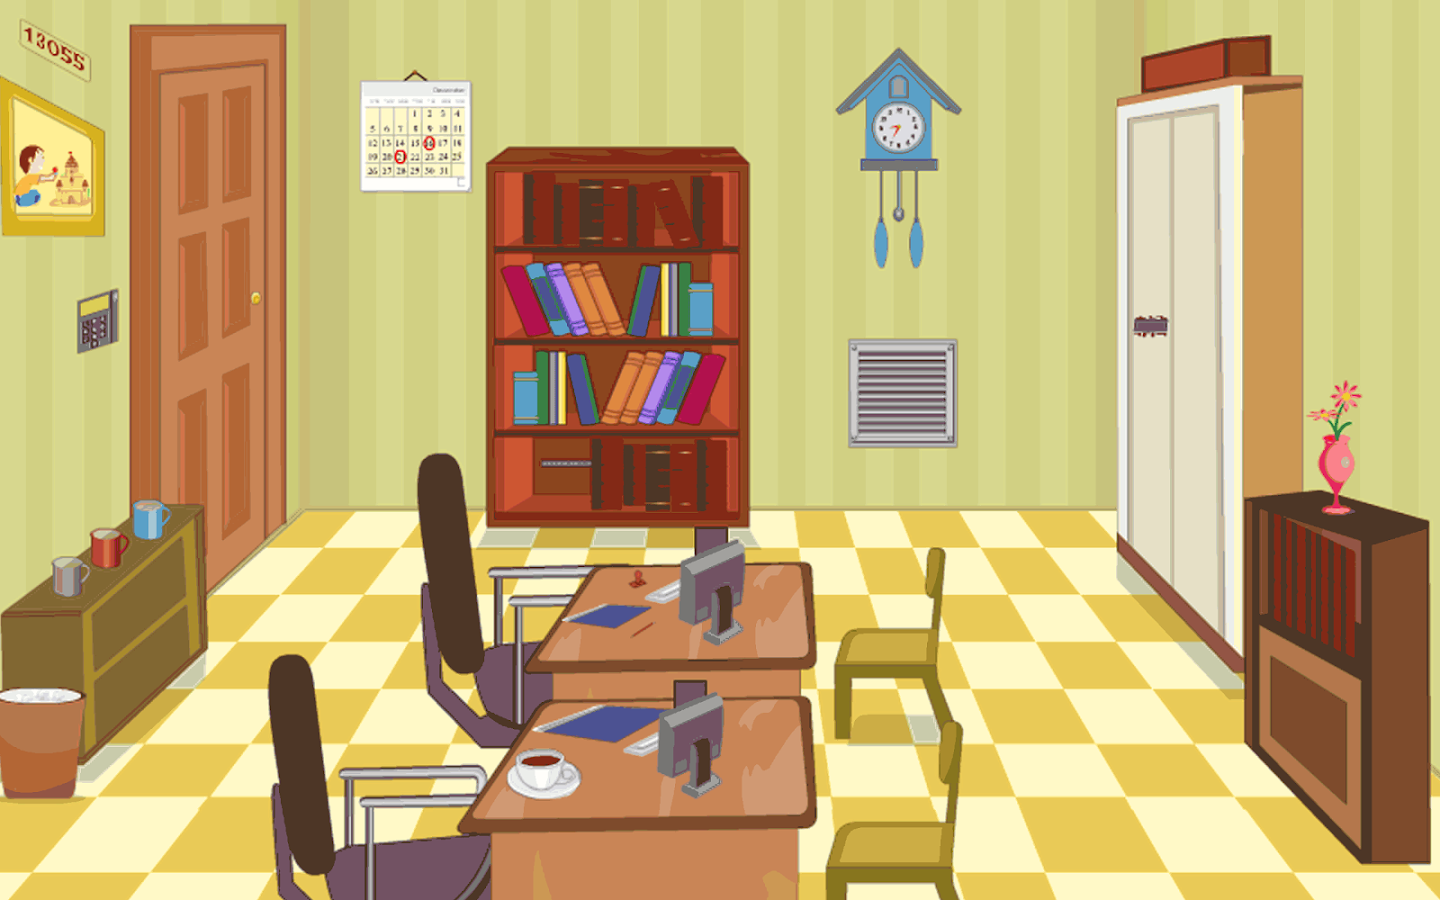 escape games-puzzle office 4 - android apps on google play